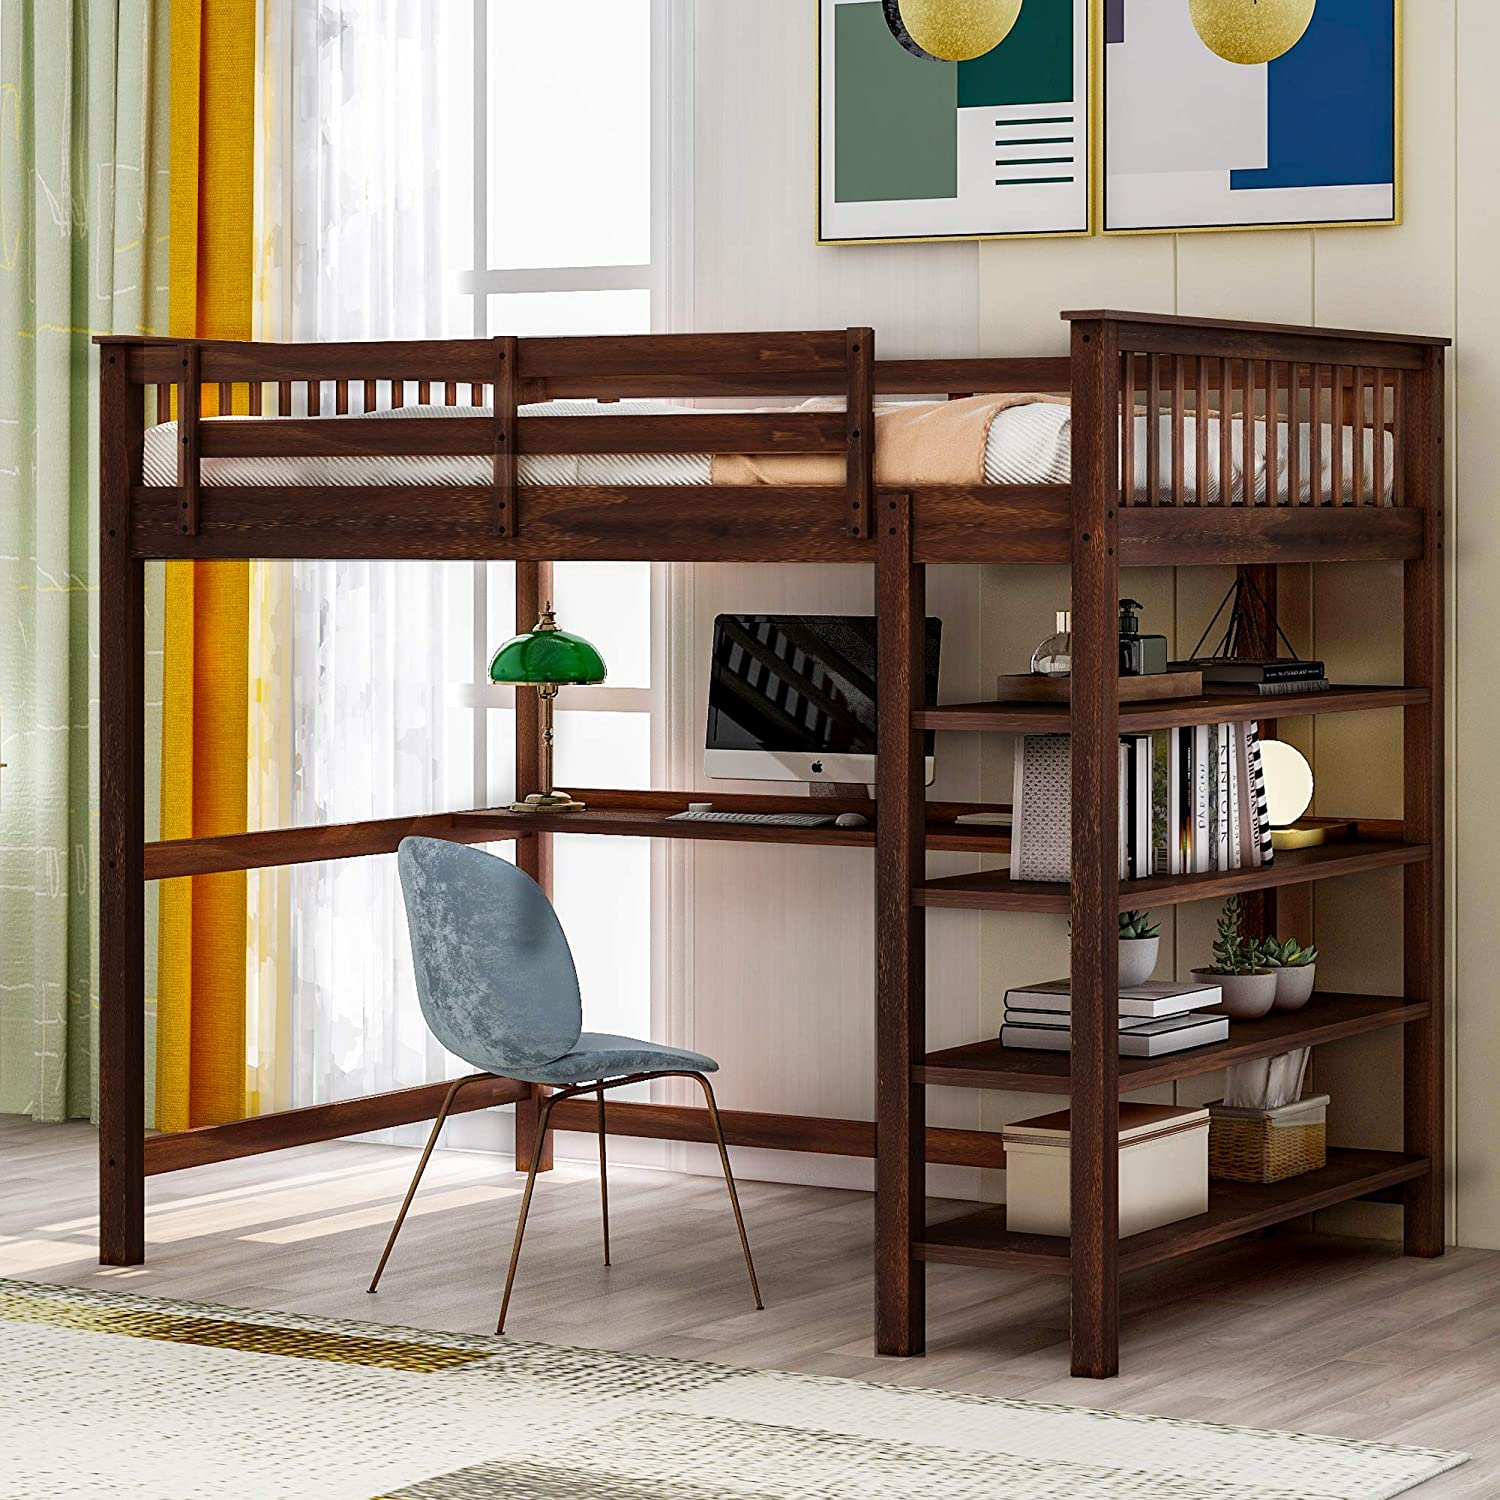 SOFTSEA Wooden Loft Bed Full Size with 4- Tier Bookcase and Under Bed Desk